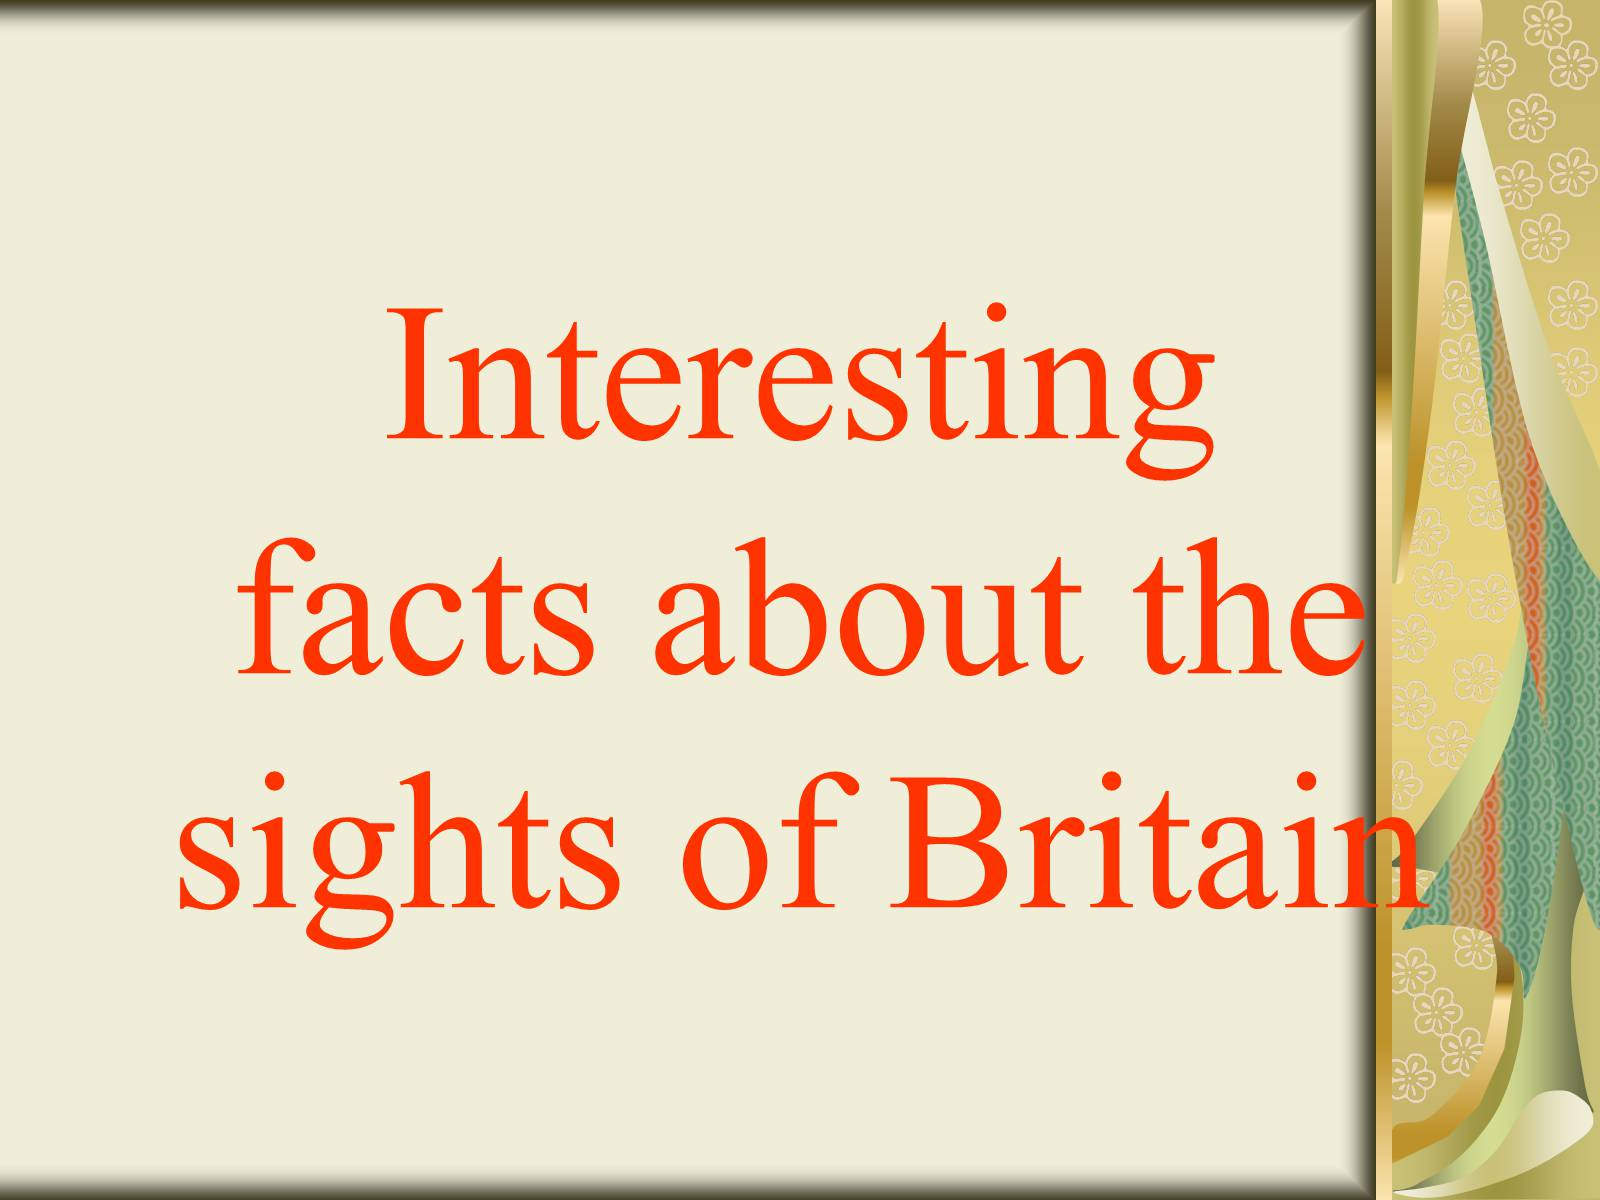 Презентація на тему «Interesting facts about the sights of Britain»